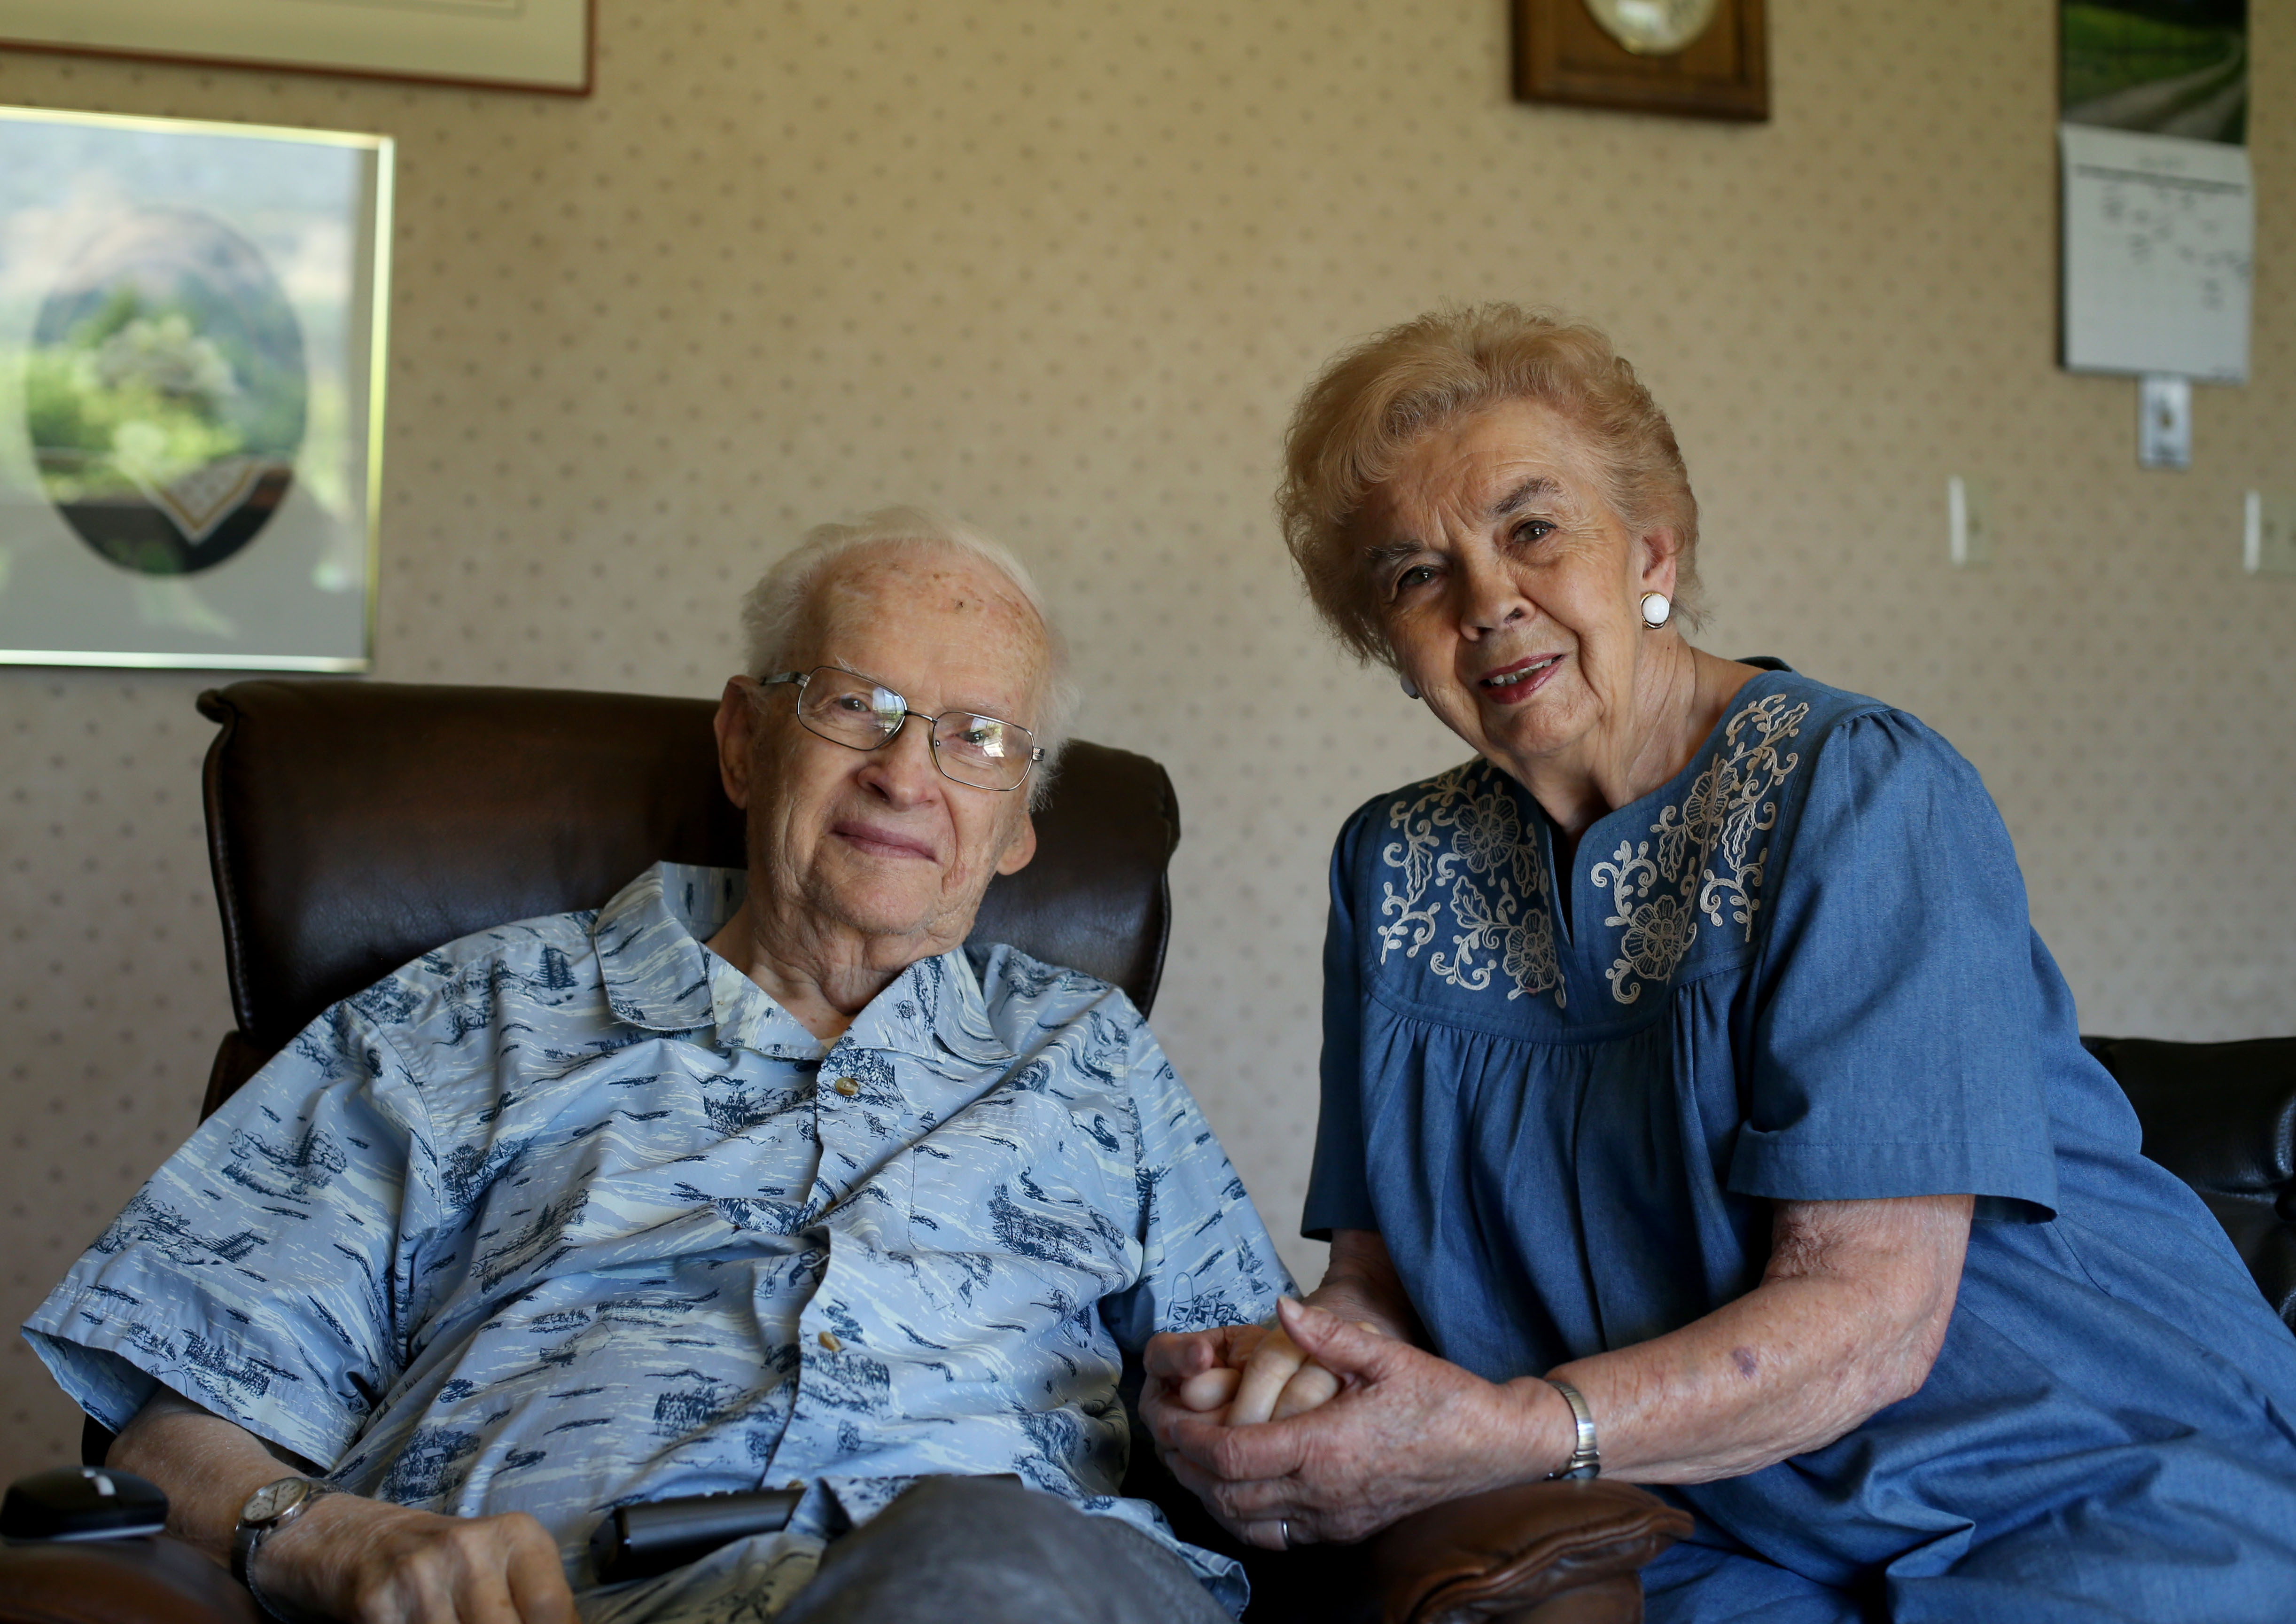 Reed and Joyce Nixon are photographed at their Orem home on Wednesday, July 10, 2019. The Nixon's have spent their entire lives serving missions for The Church of Jesus Christ of Latter-day Saints.